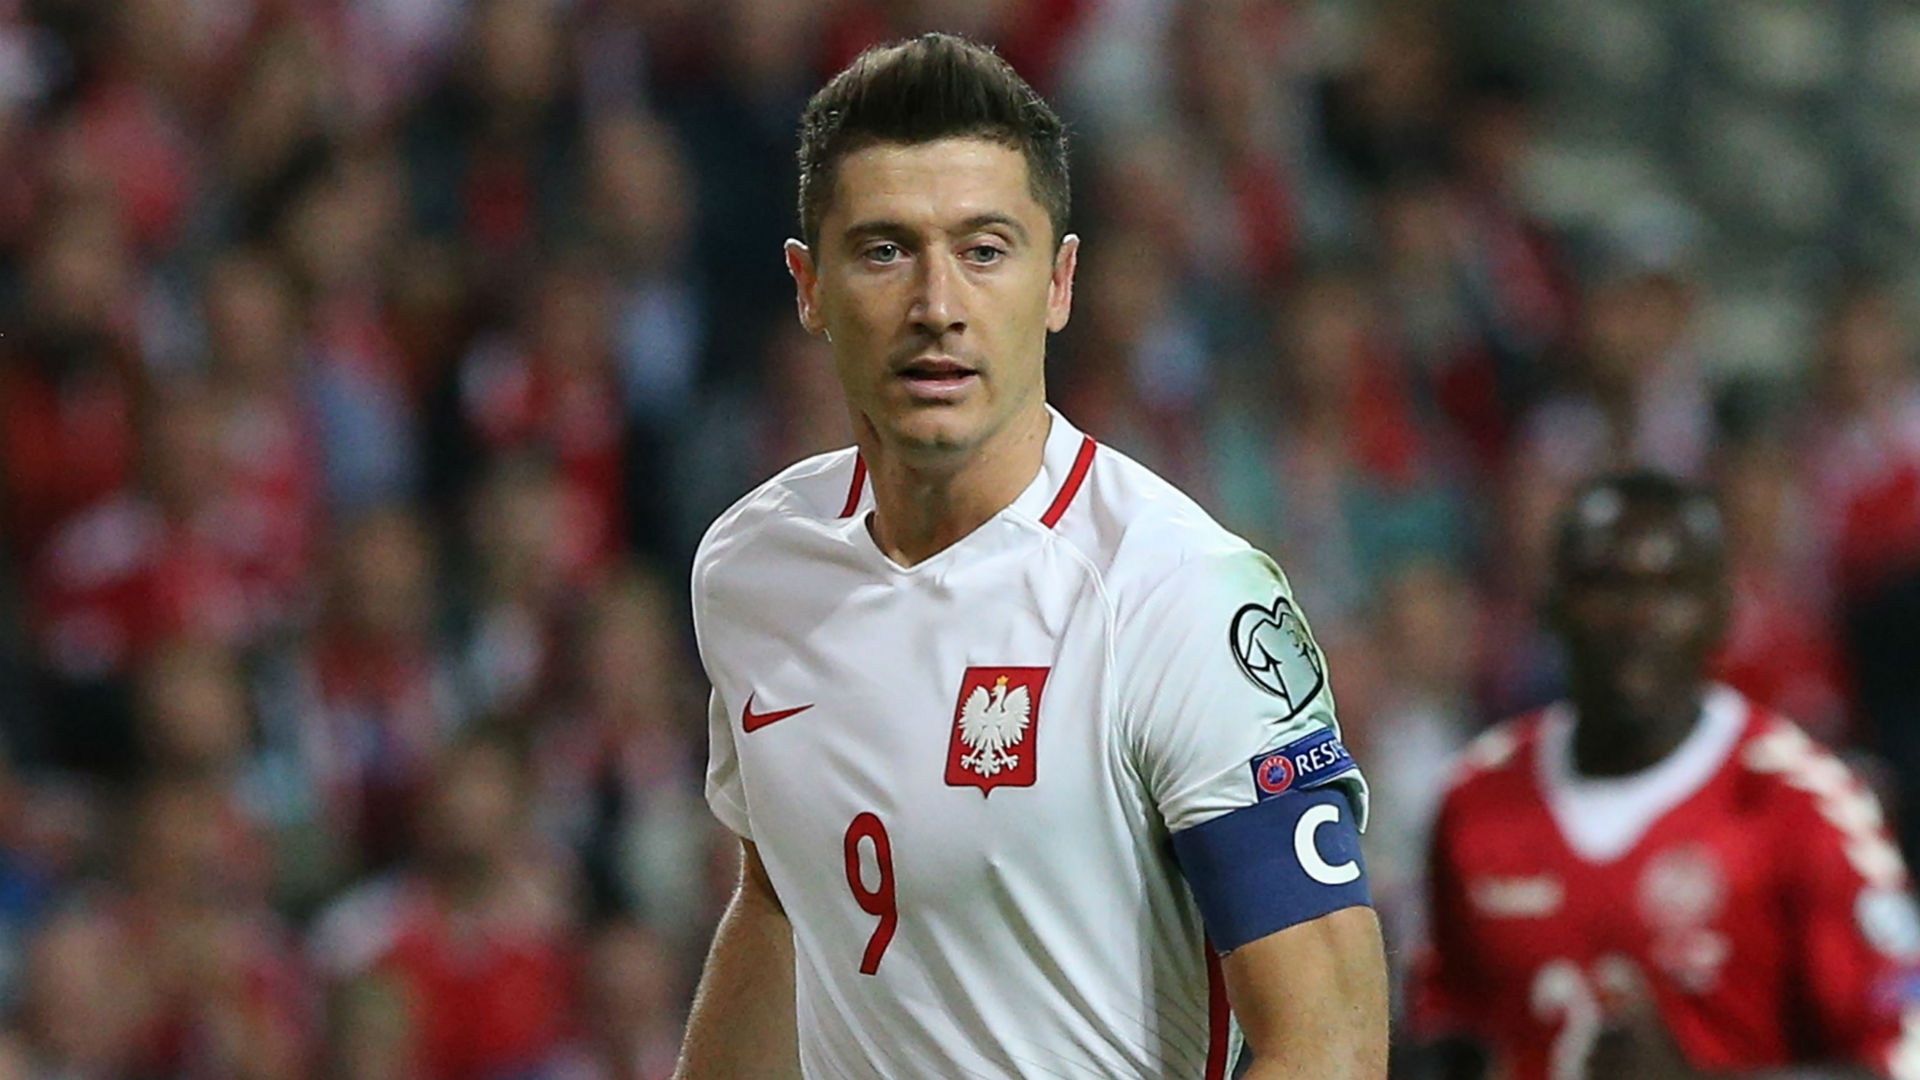 Robert Lewandowski - Poland